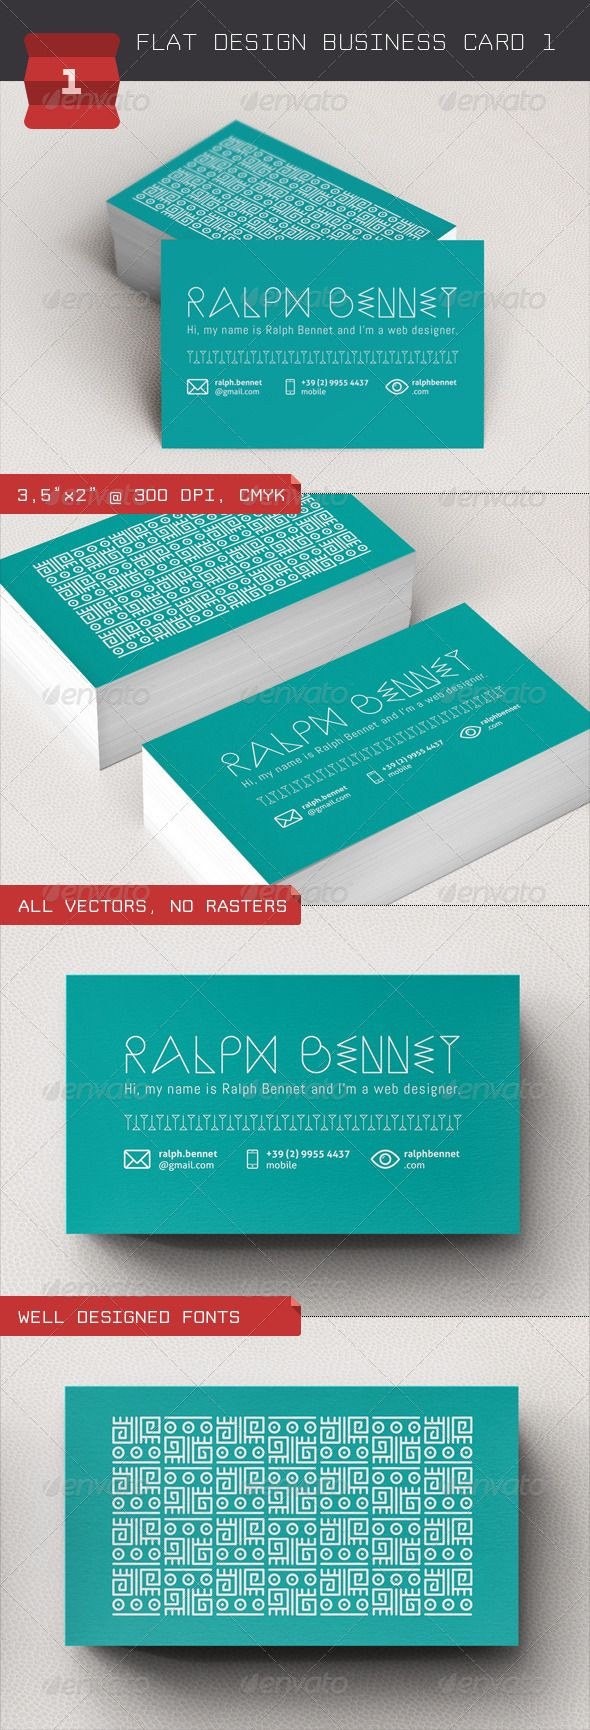 115 best business cards images on pinterest presentation cards 115 best business cards images on pinterest presentation cards cards and design studios magicingreecefo Choice Image